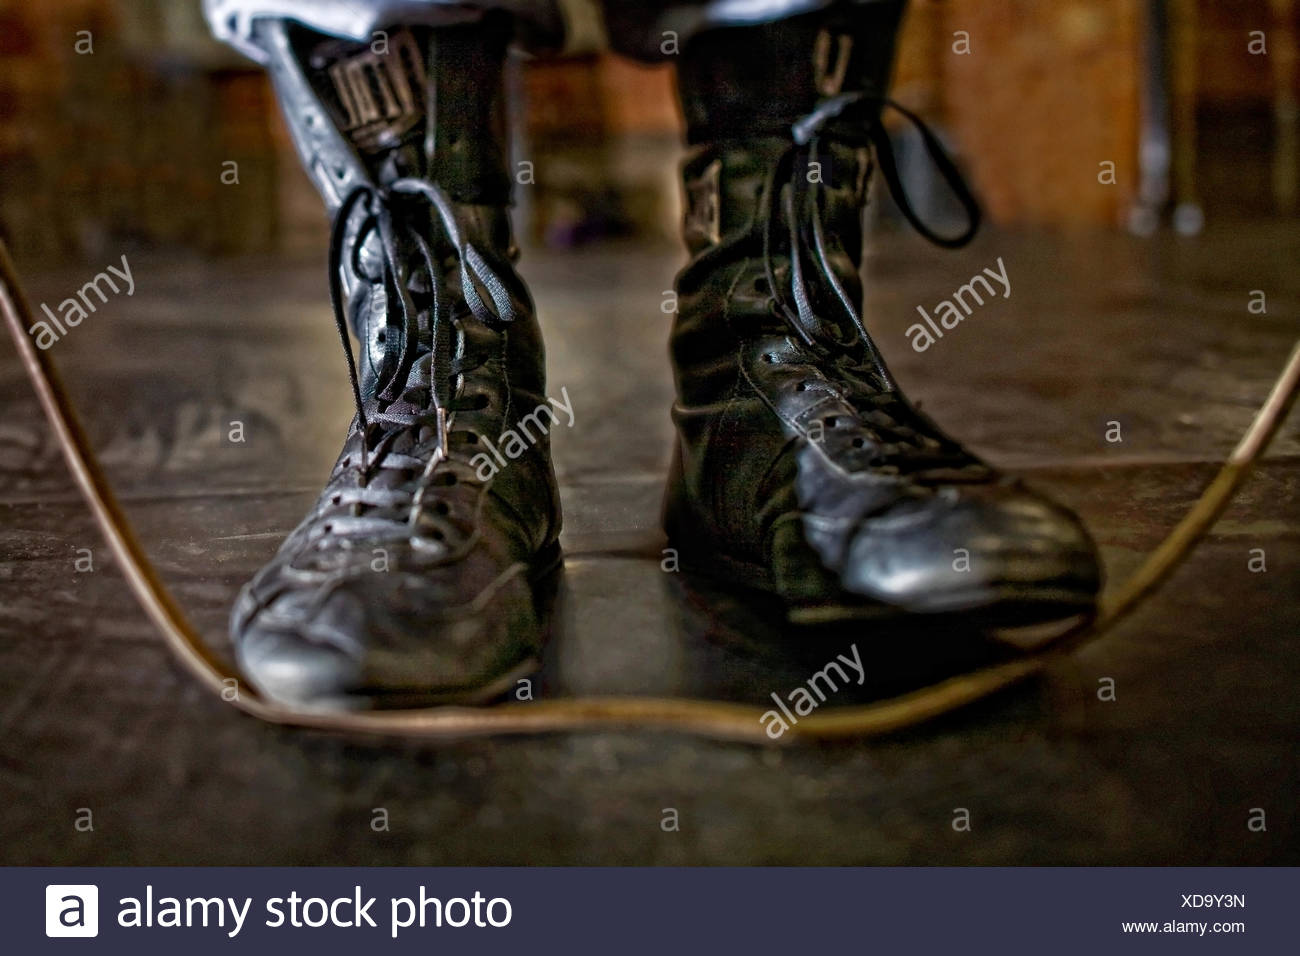 USA, Colorado, Mesa County, Grand Junction, Boxers shoe detail with jump rope - Stock Image